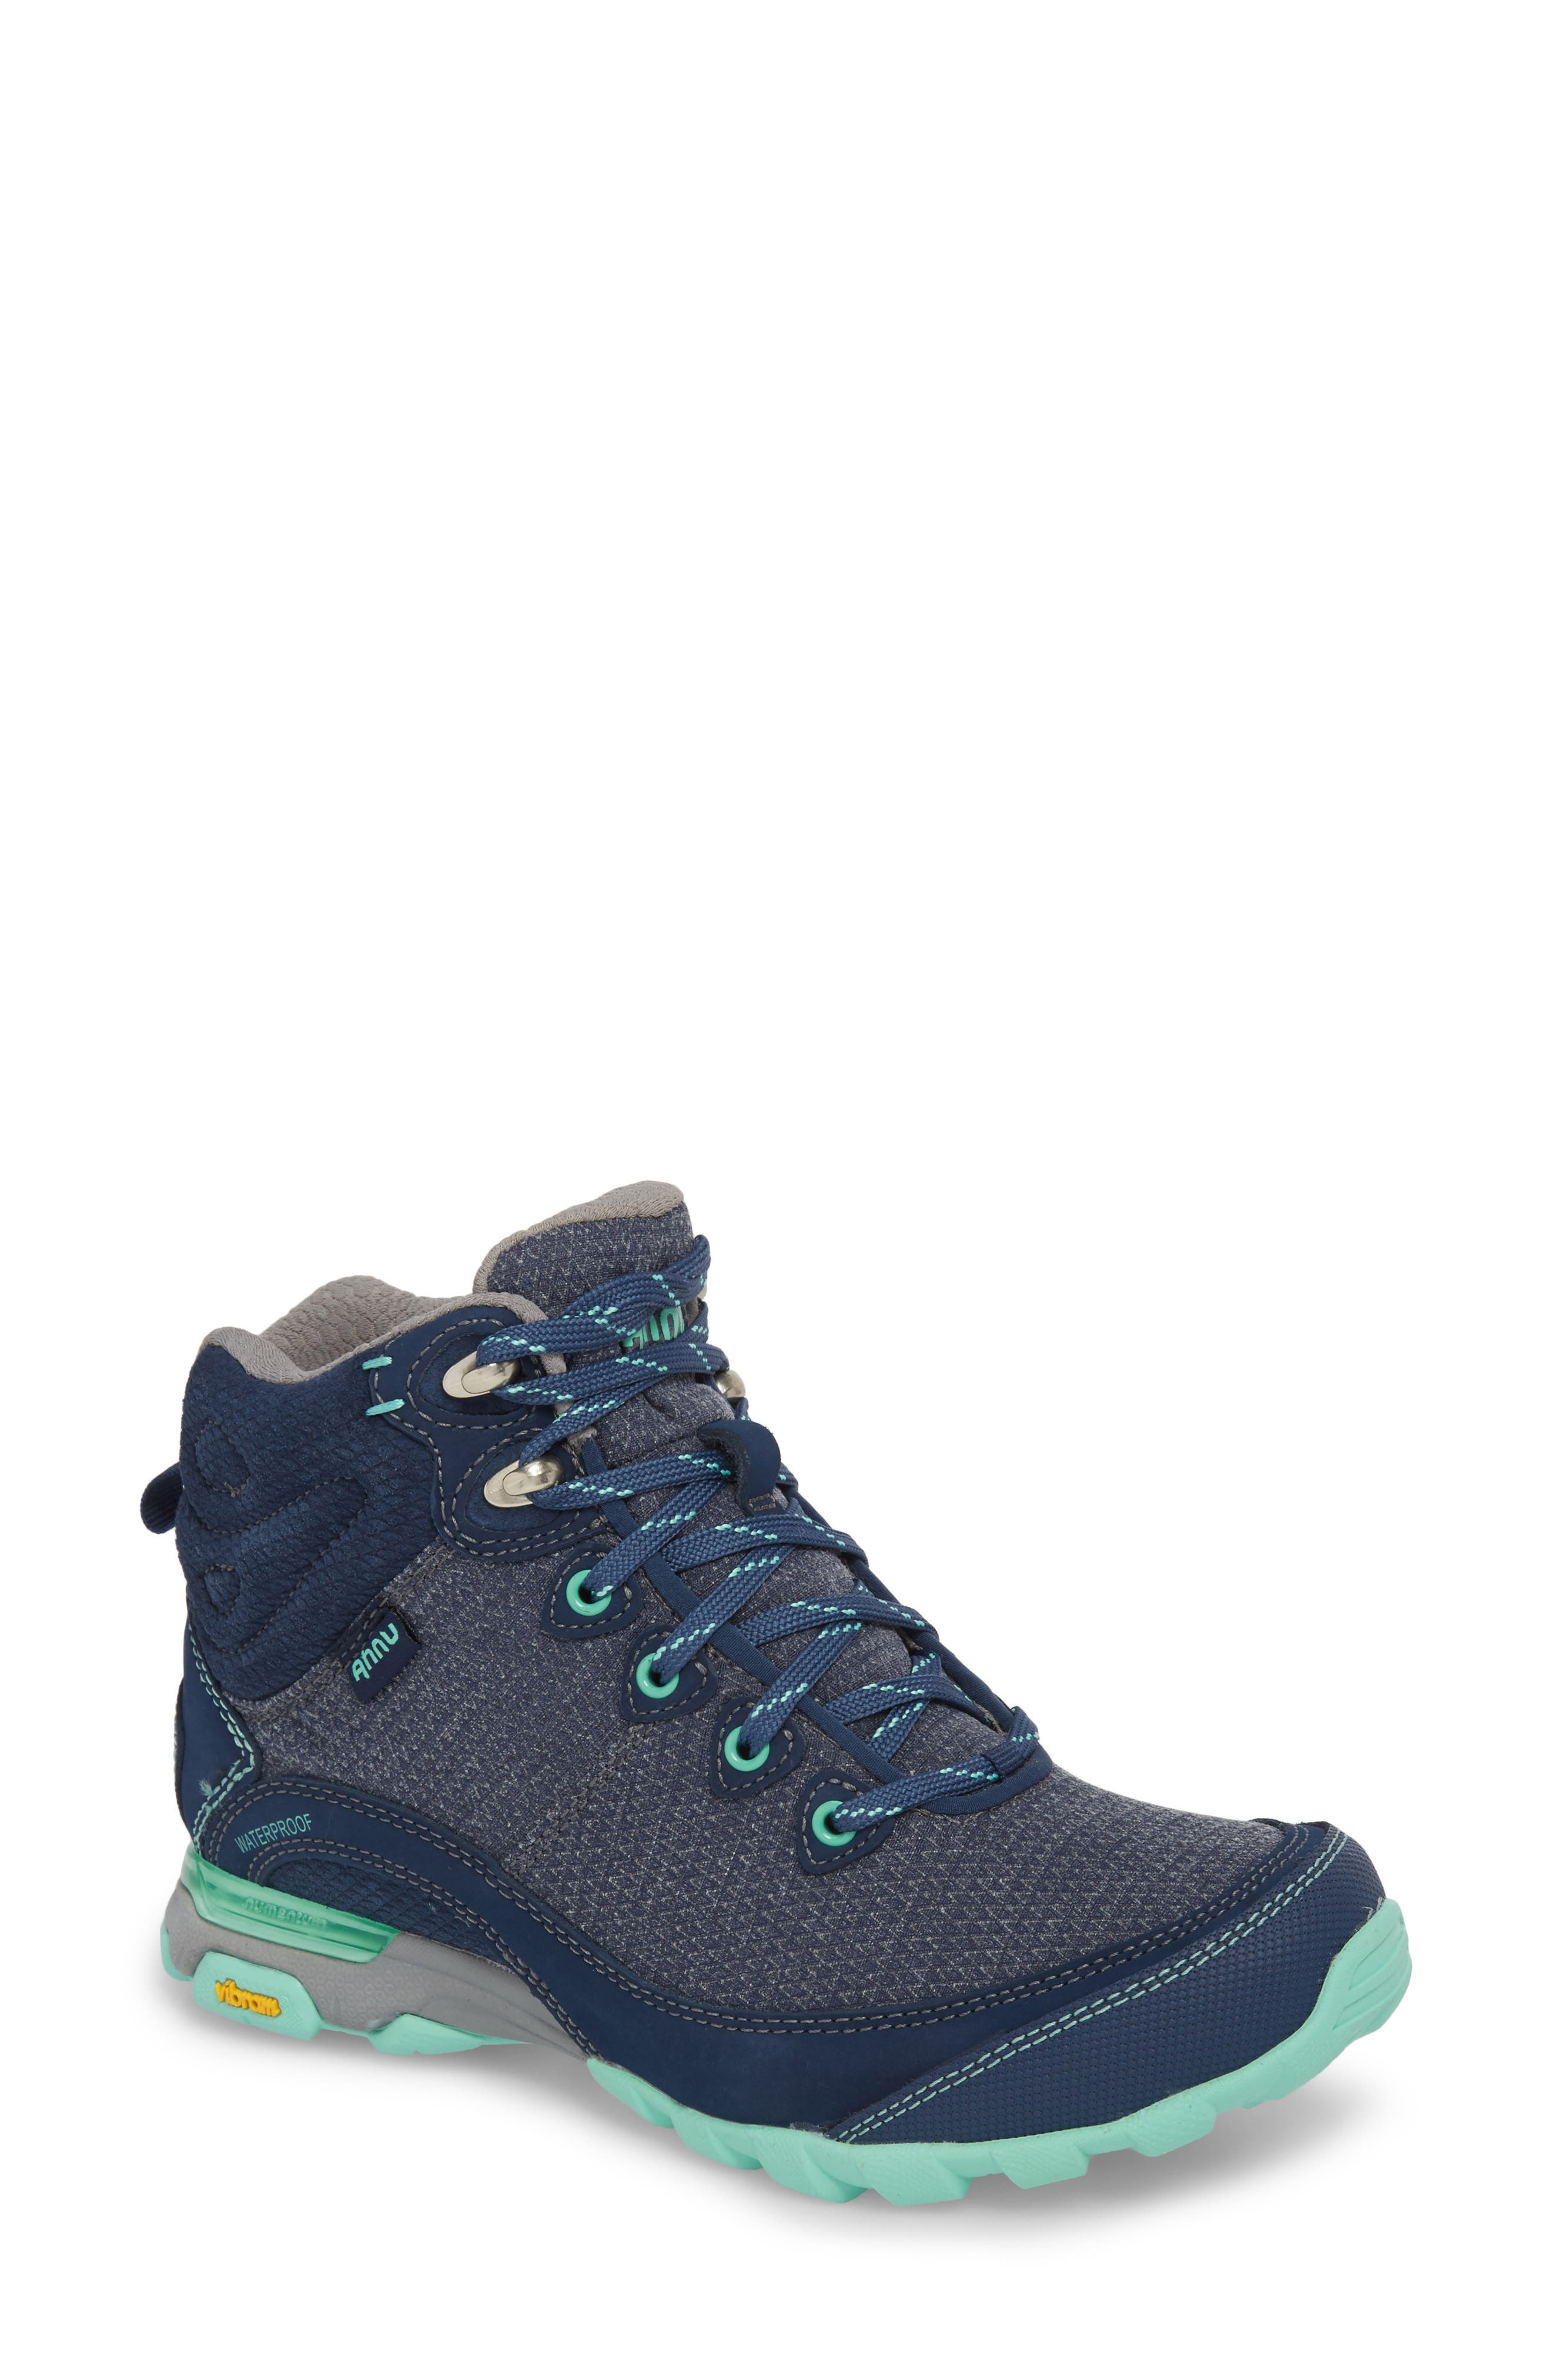 Ahnu By Teva Sugarpine Ii Waterproof Hiking Boot- Blue